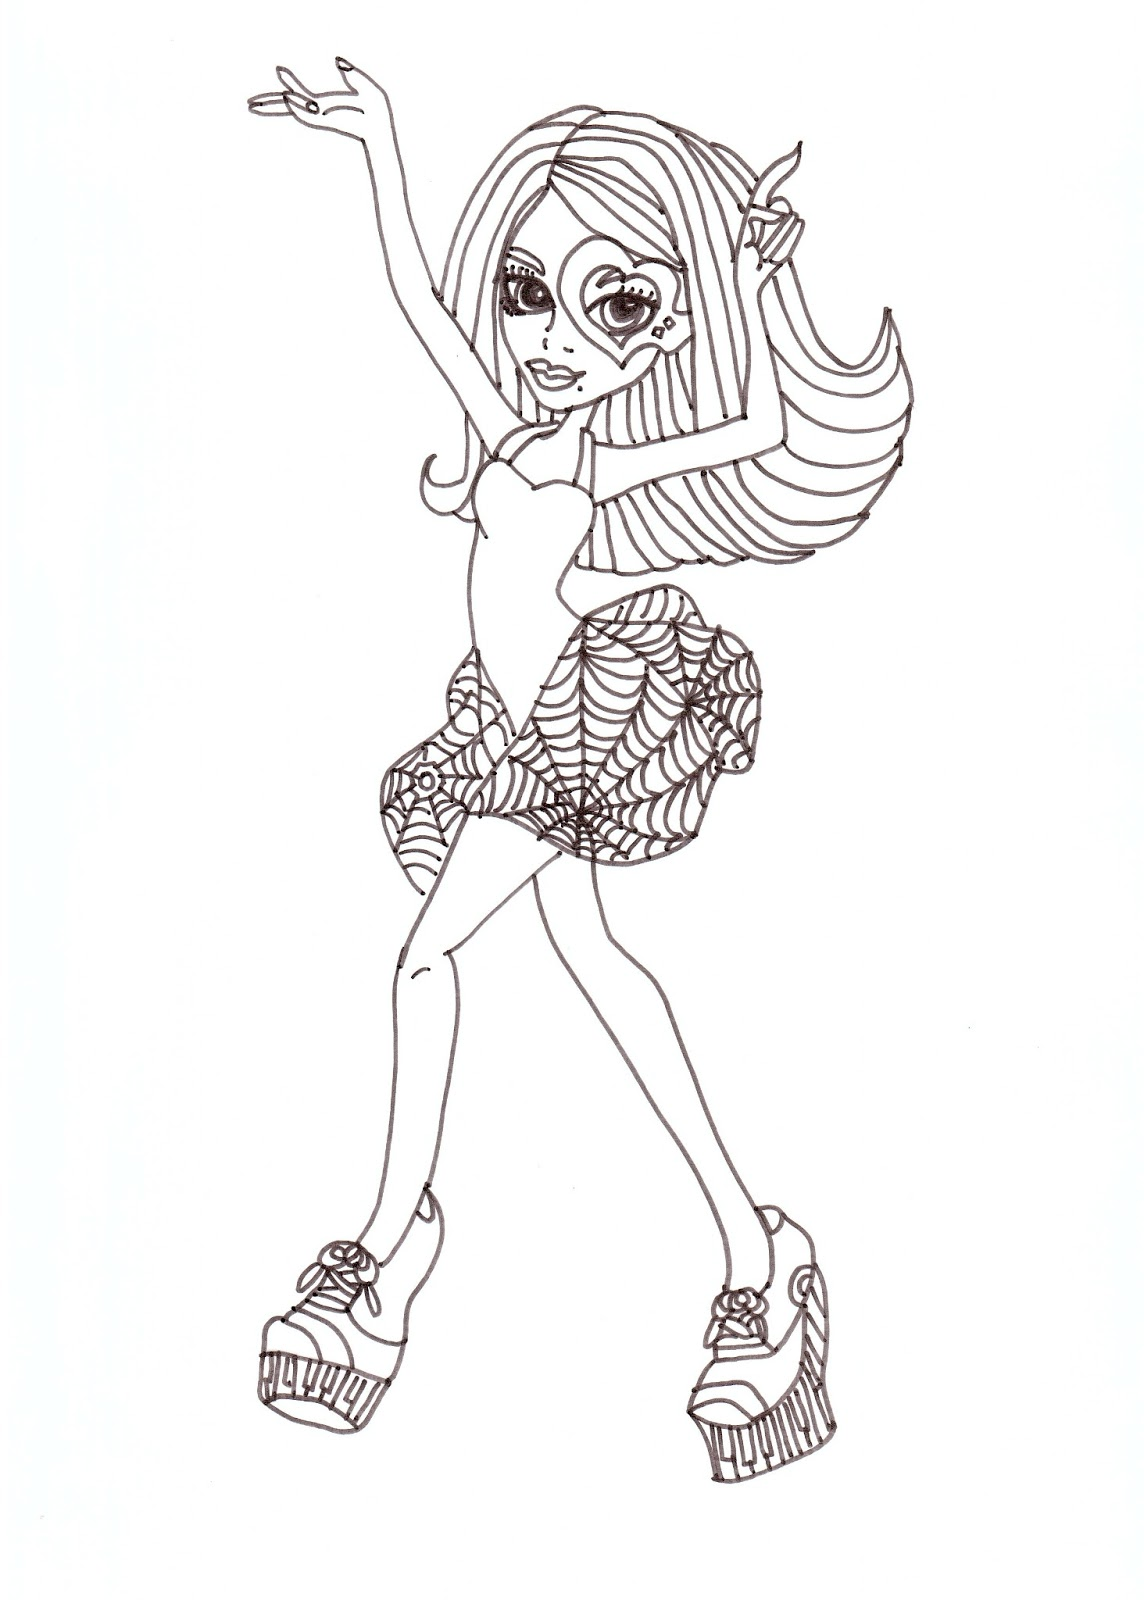 Free Printable Monster High Coloring Pages: Operetta Dance